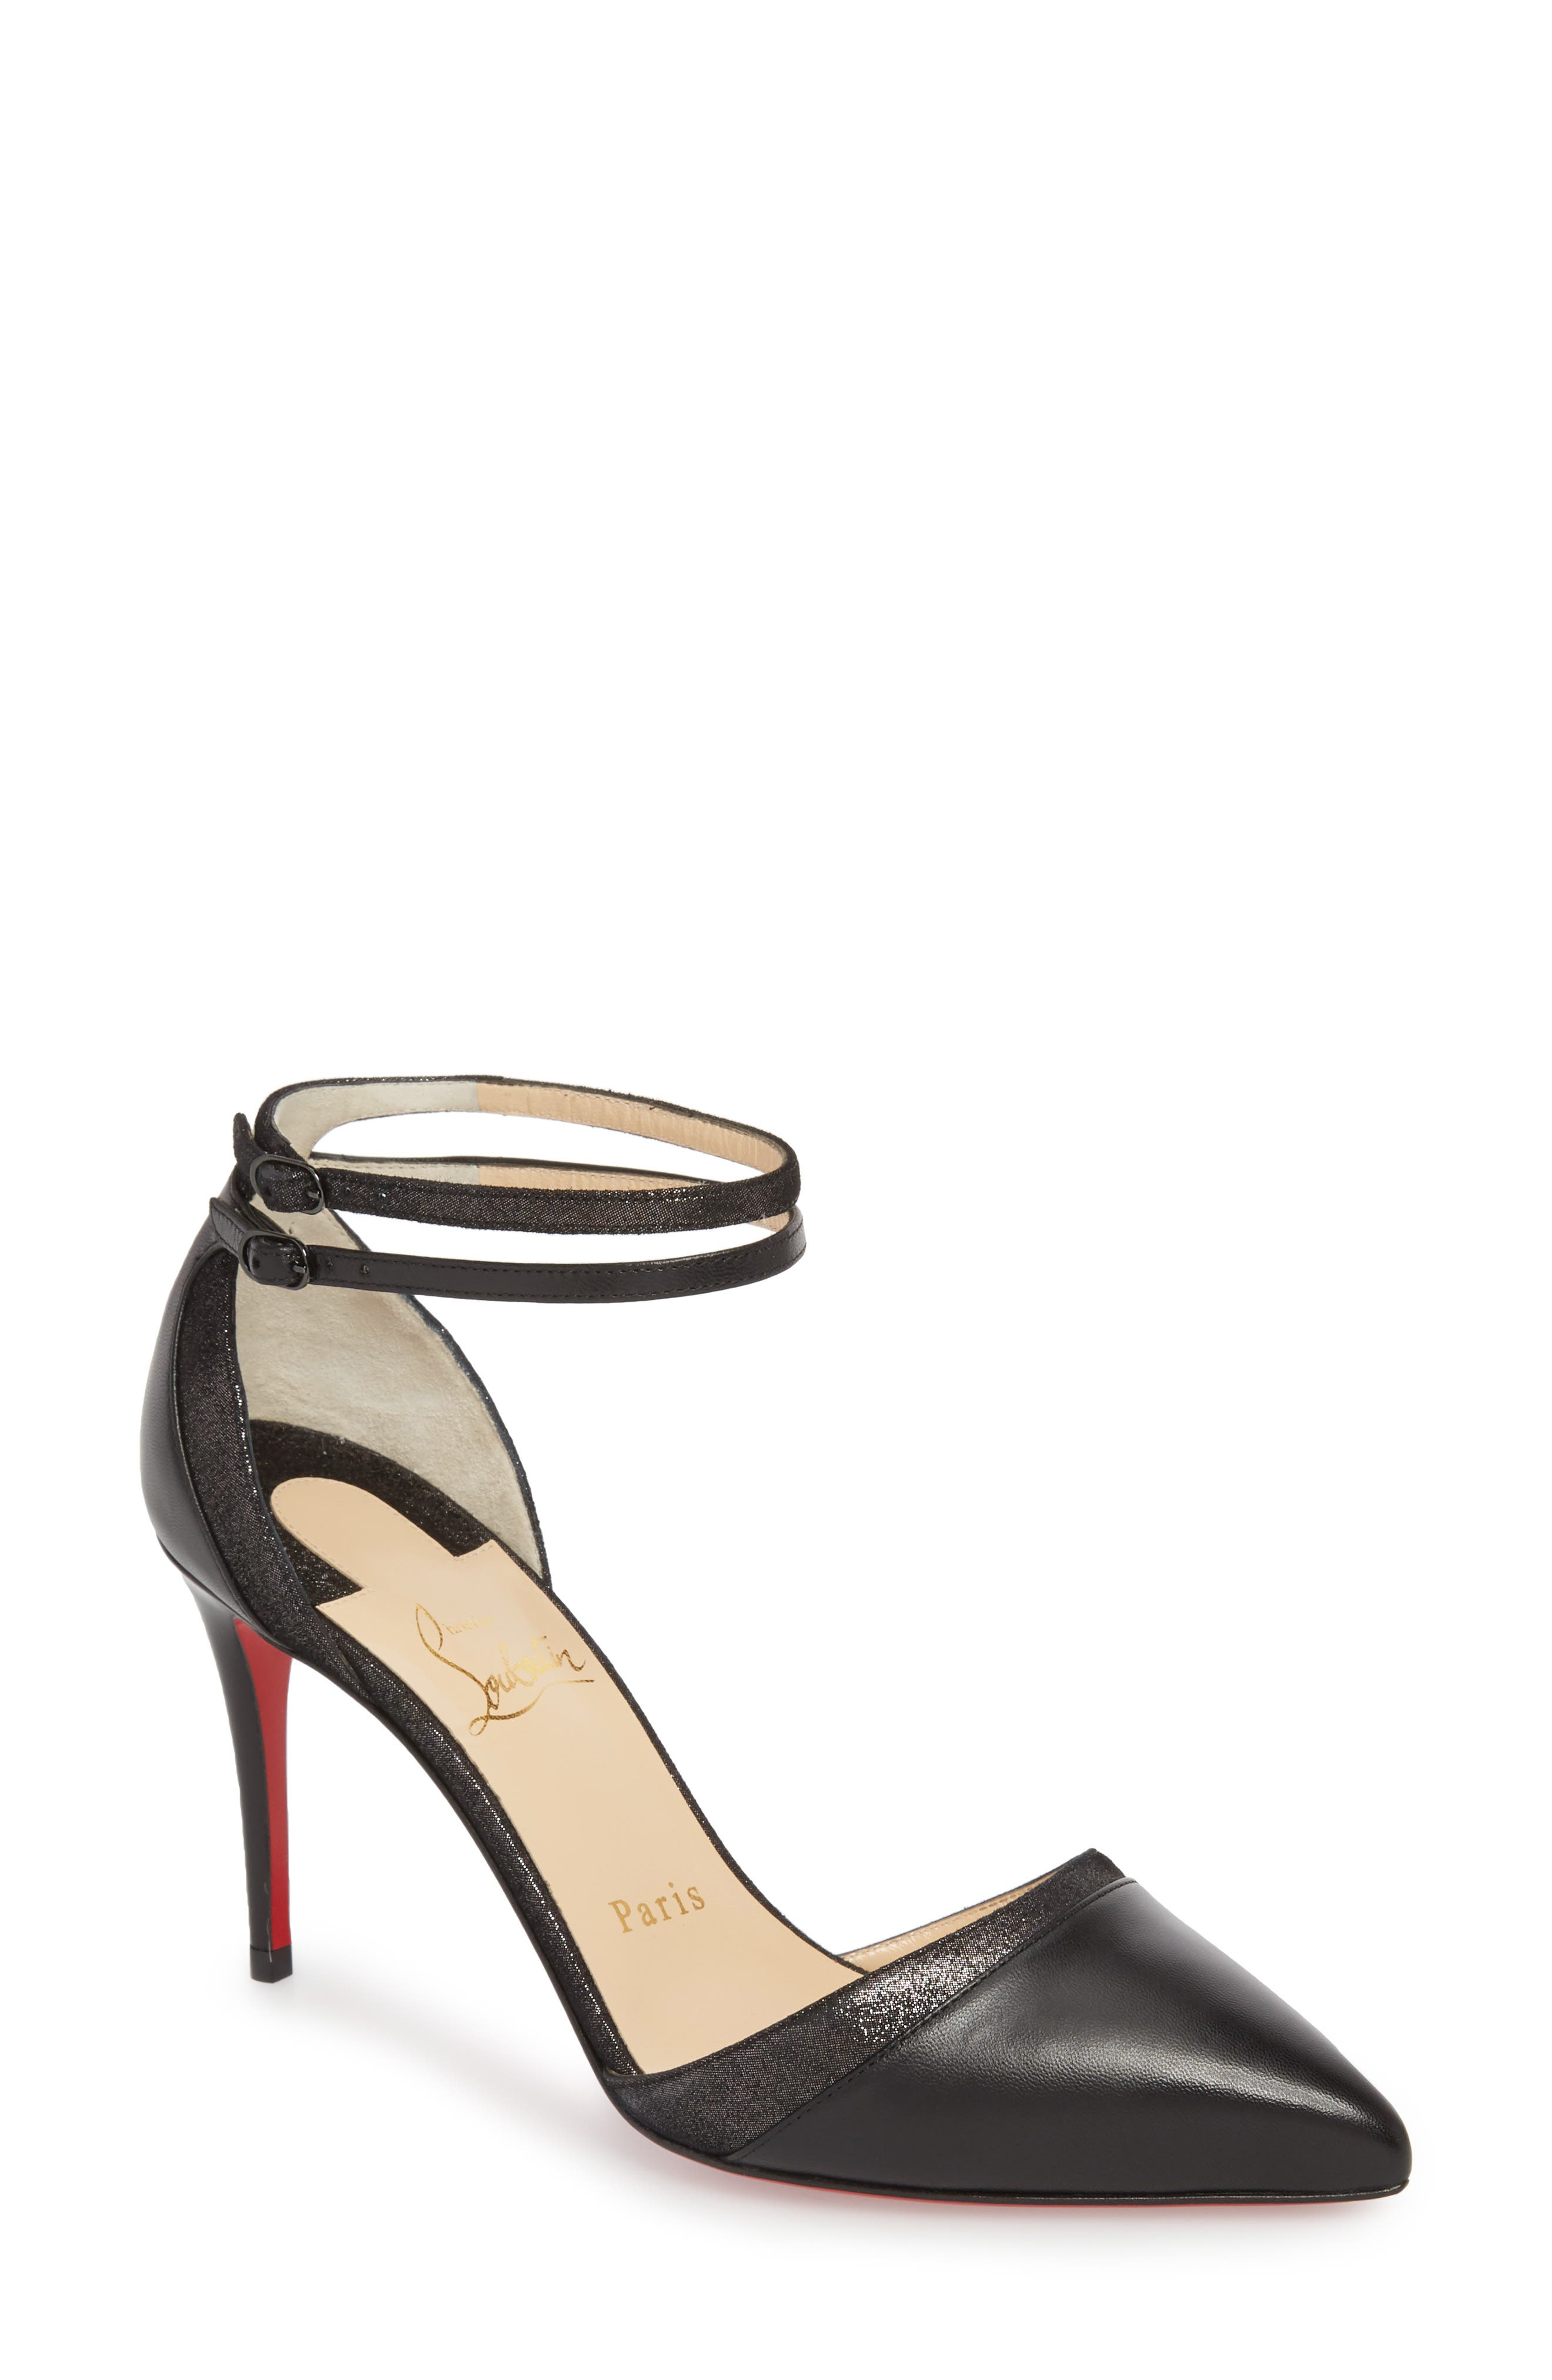 d5d6c59e4ed ireland christian louboutin uptown ankle strap pump women 6a9ad b6f67